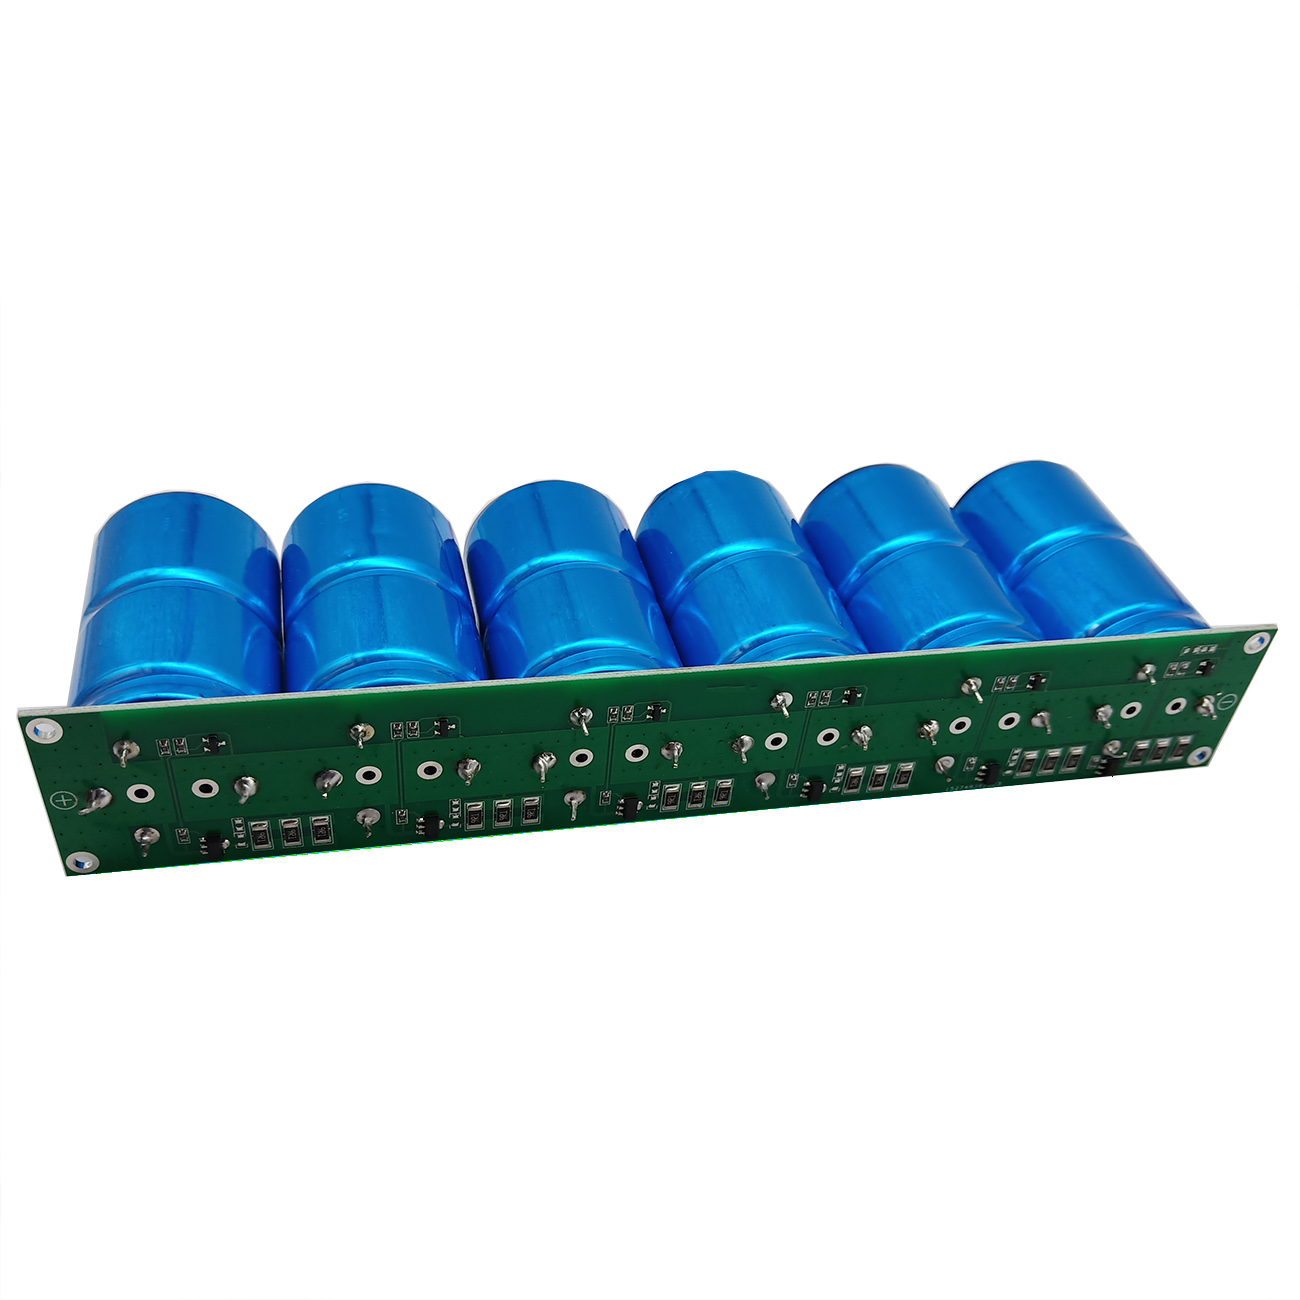 Farad Capacitor 2 7V 500F 6 pieces 1 Set Super Capacity With protective panel Automotive Capacitors